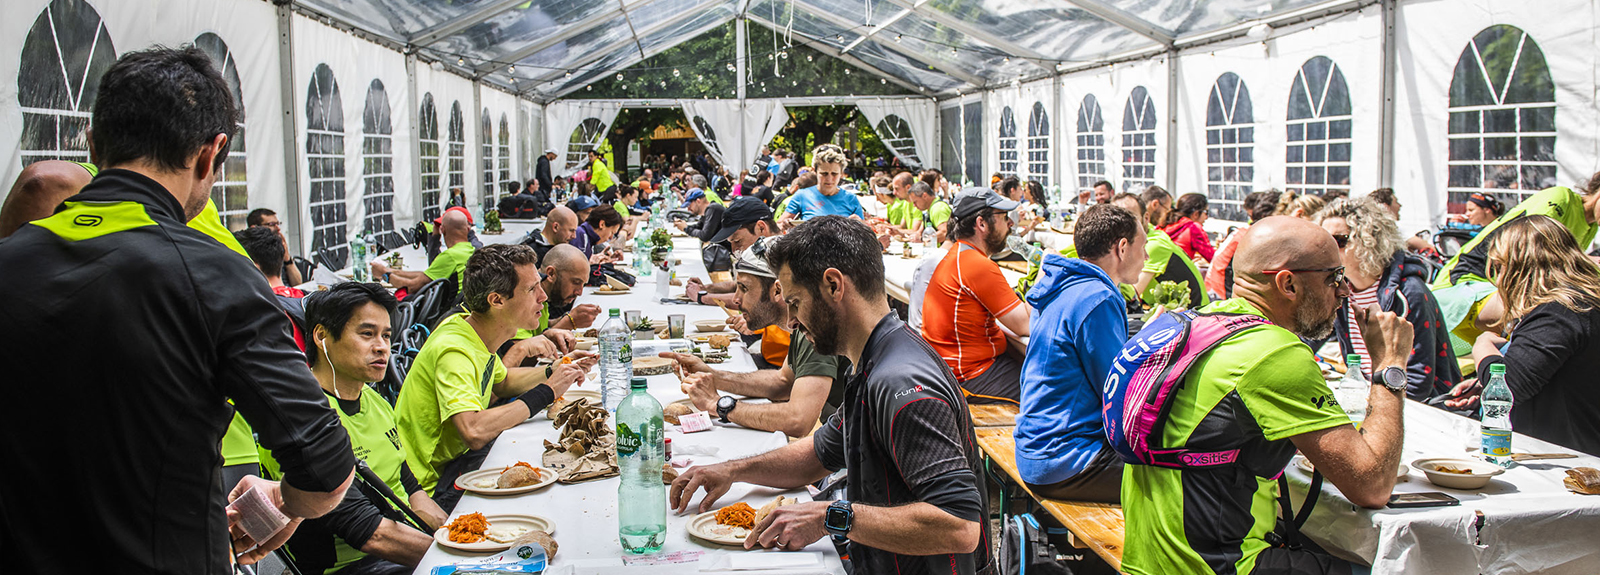 31 May – Post-race lunch/meal